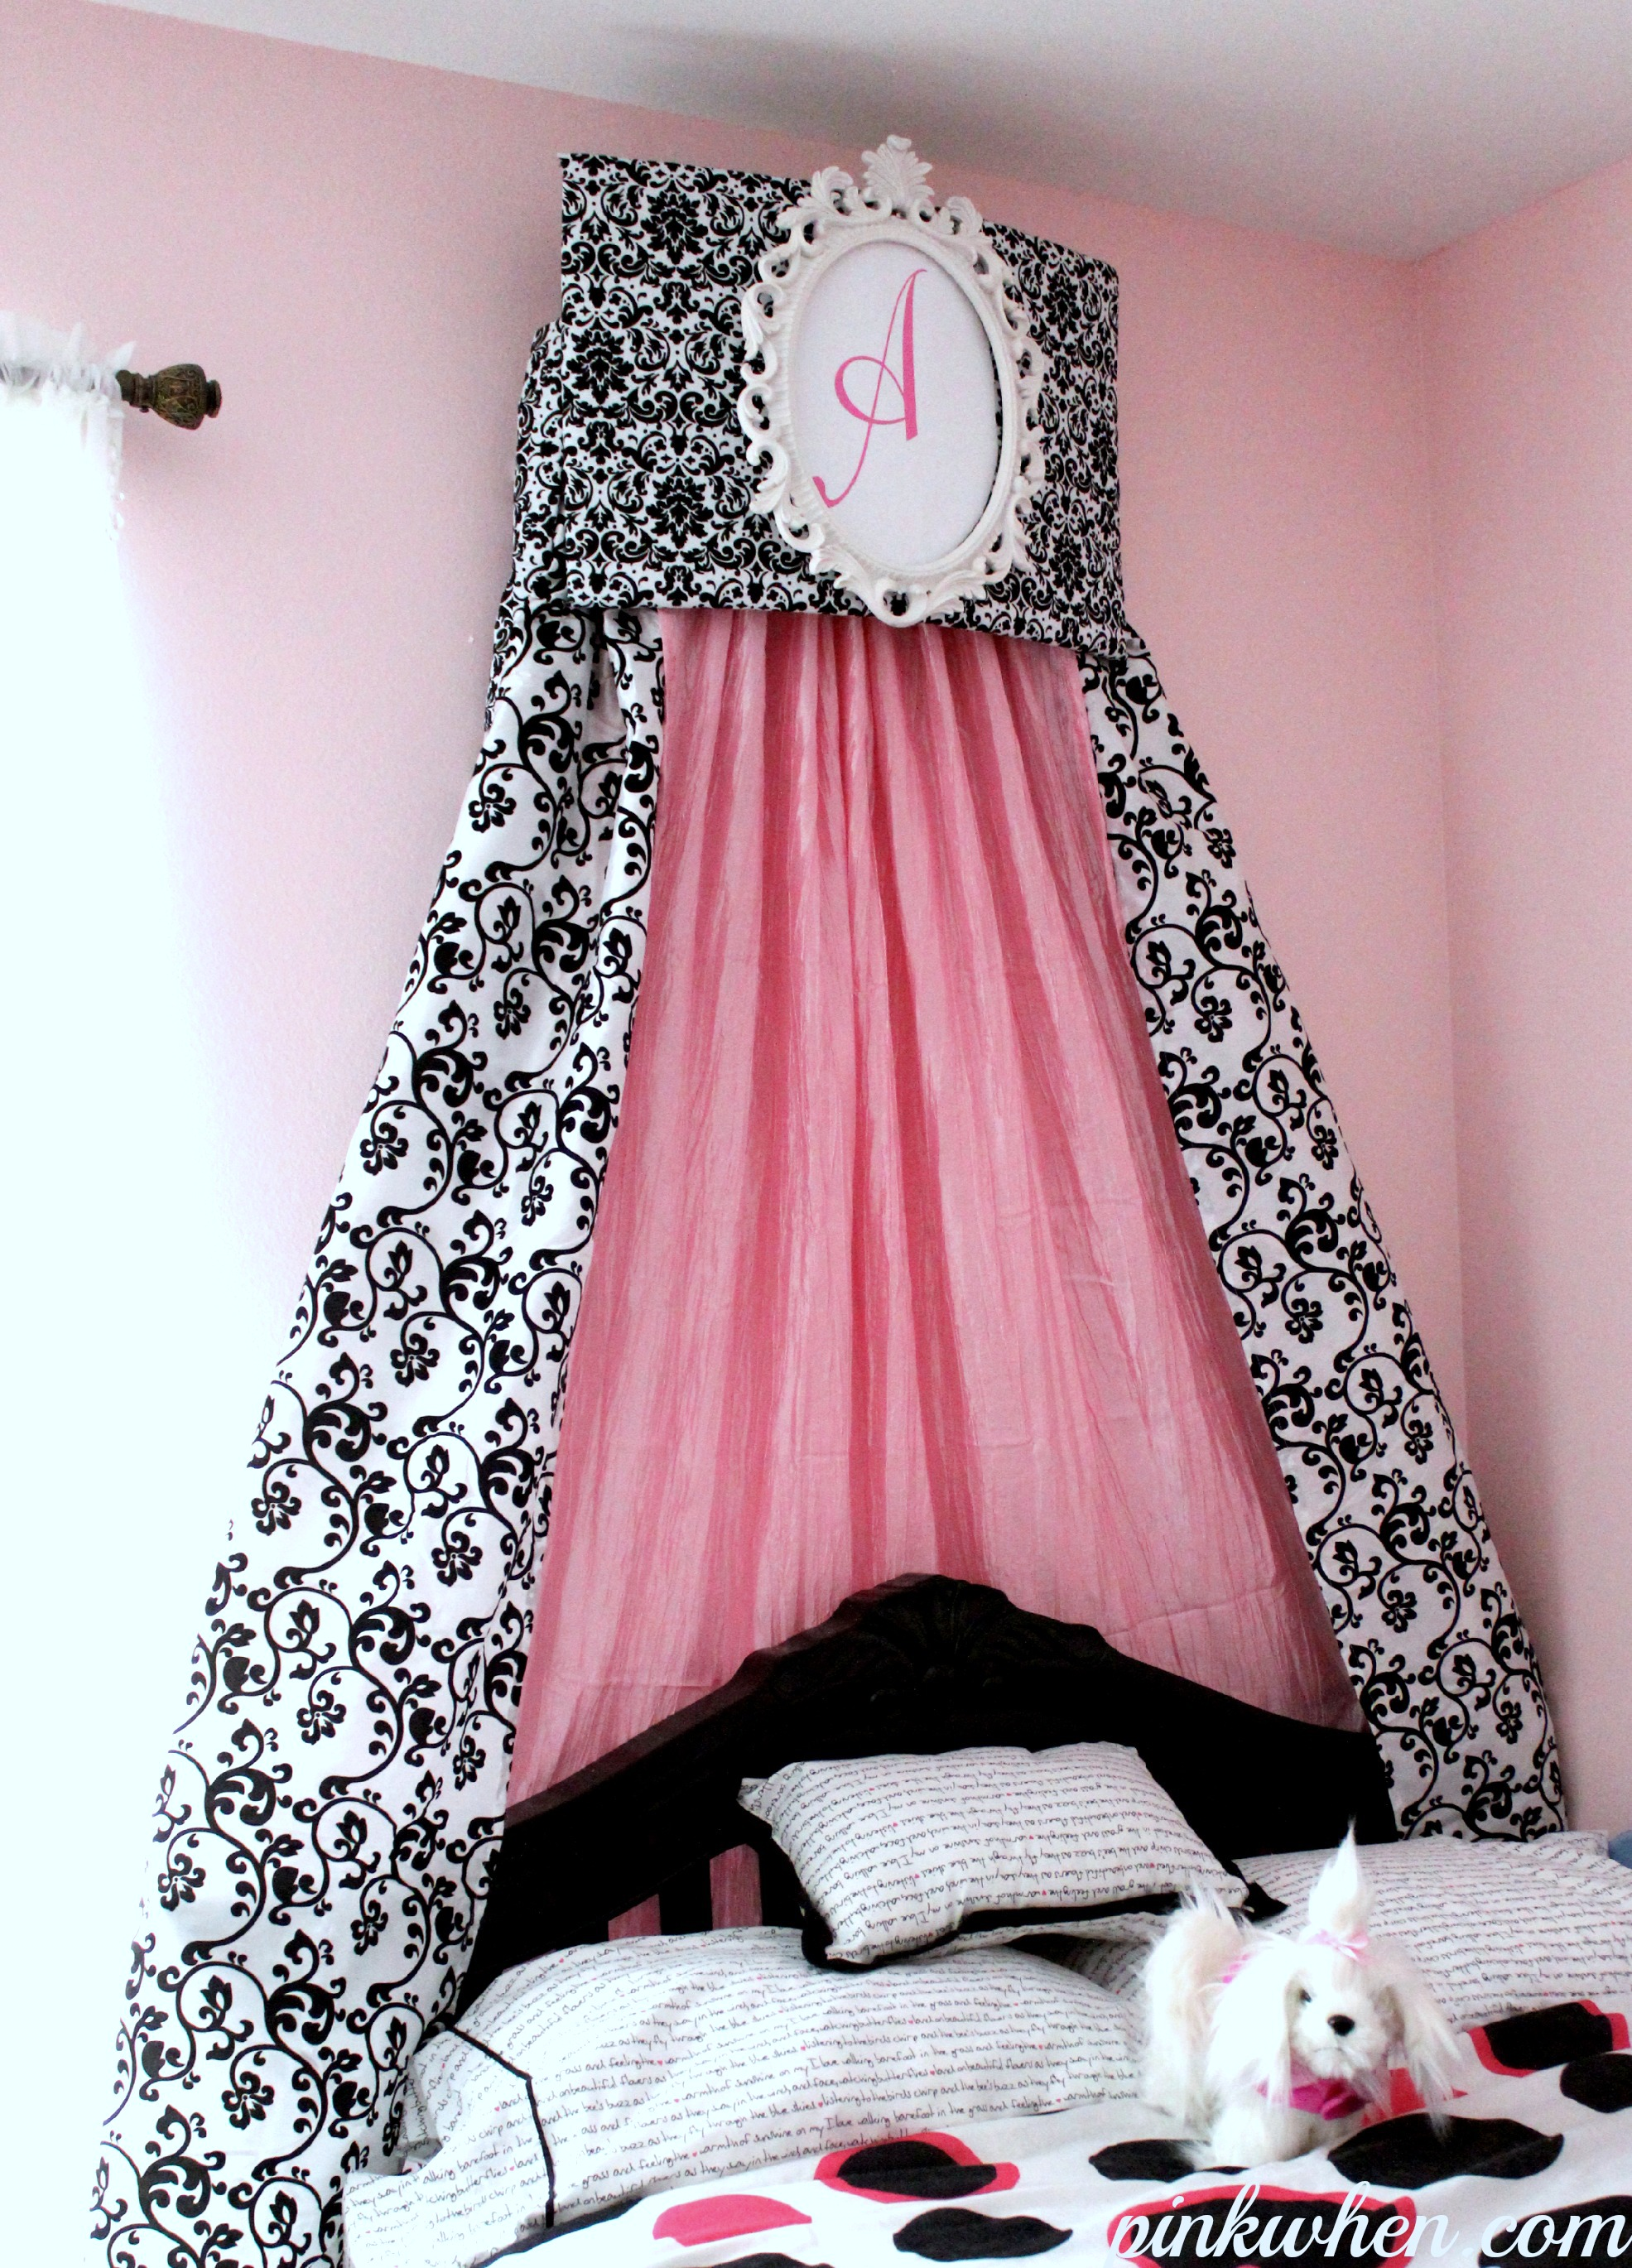 black-and-white-crown-cornice-pink-when & Remodelaholic | 25 Beautiful Bed Canopies You Can DIY